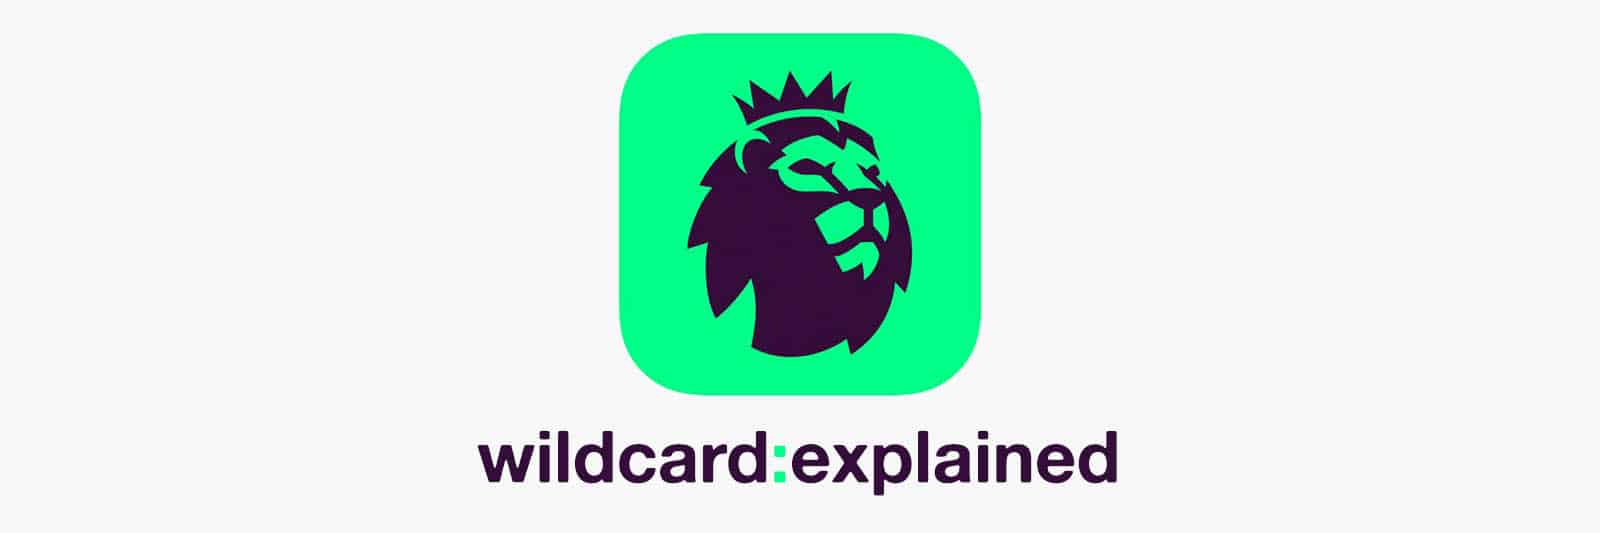 fpl-wildcard-explained